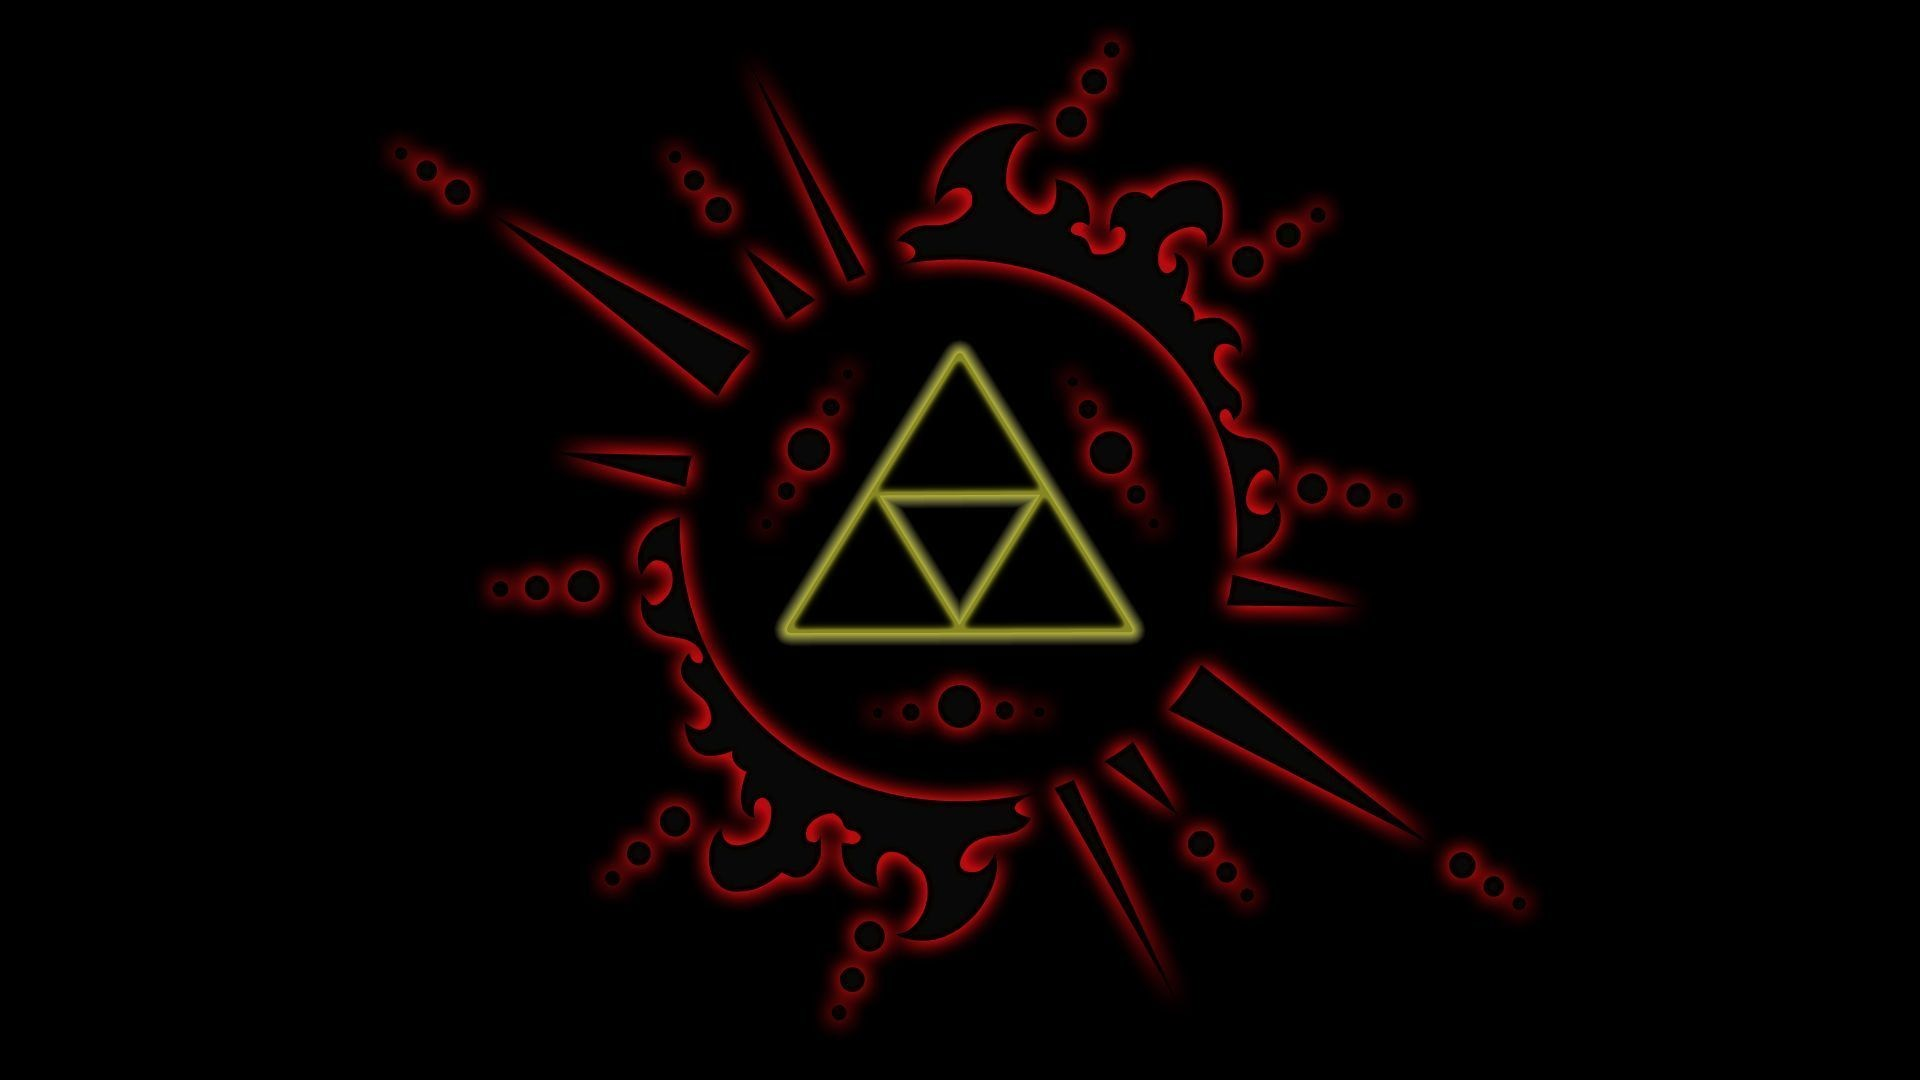 30+ Zelda wallpapers ·① Download free full HD backgrounds for desktop and mobile devices in any ...